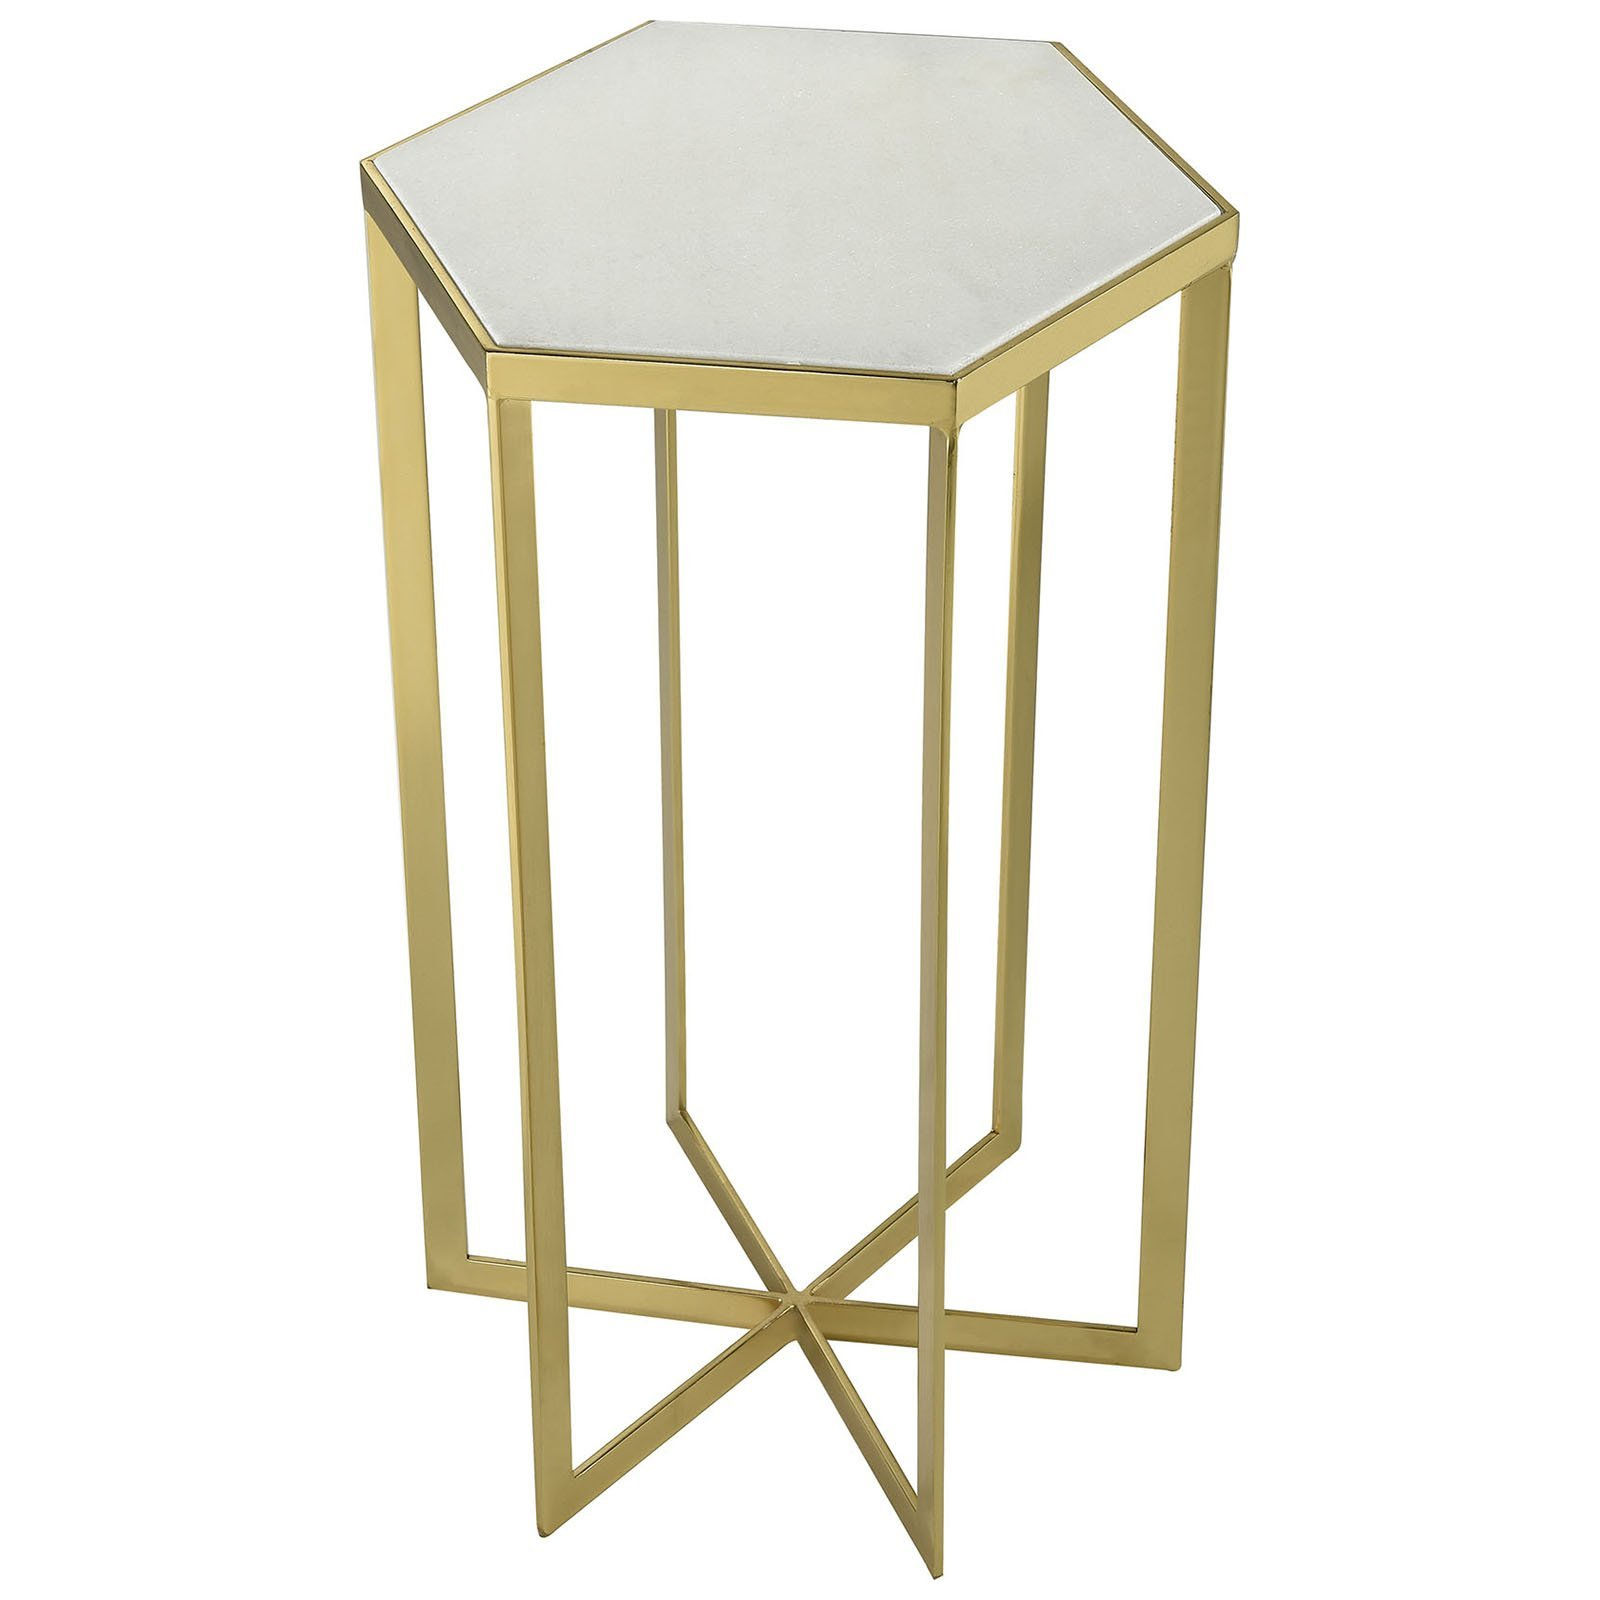 halter contemporary accent tables gold fratantoni lifestyles metal table plated with genuine white marble top usb end vintage brass and glass coffee kitchen dining sets teal chair